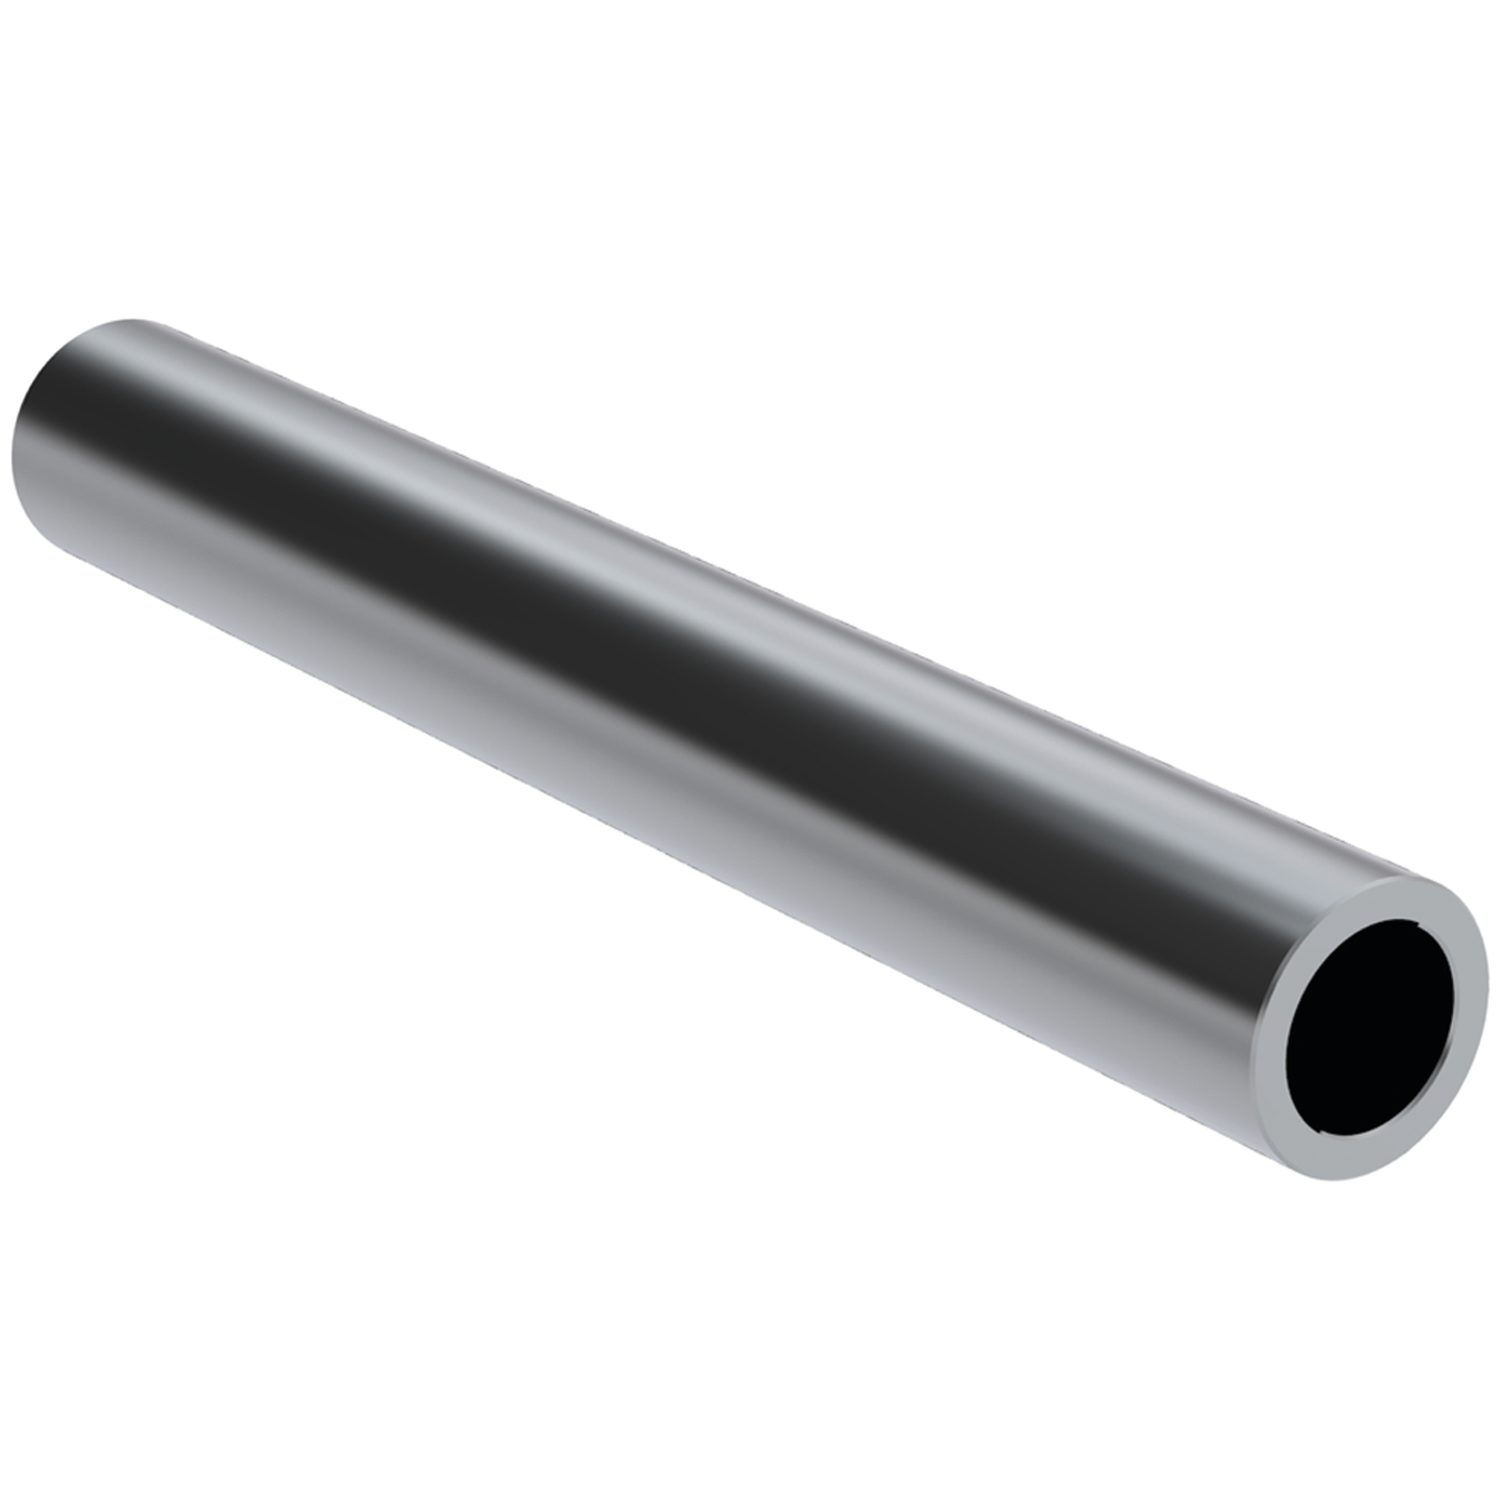 Hollow Steel Linear Shalfts